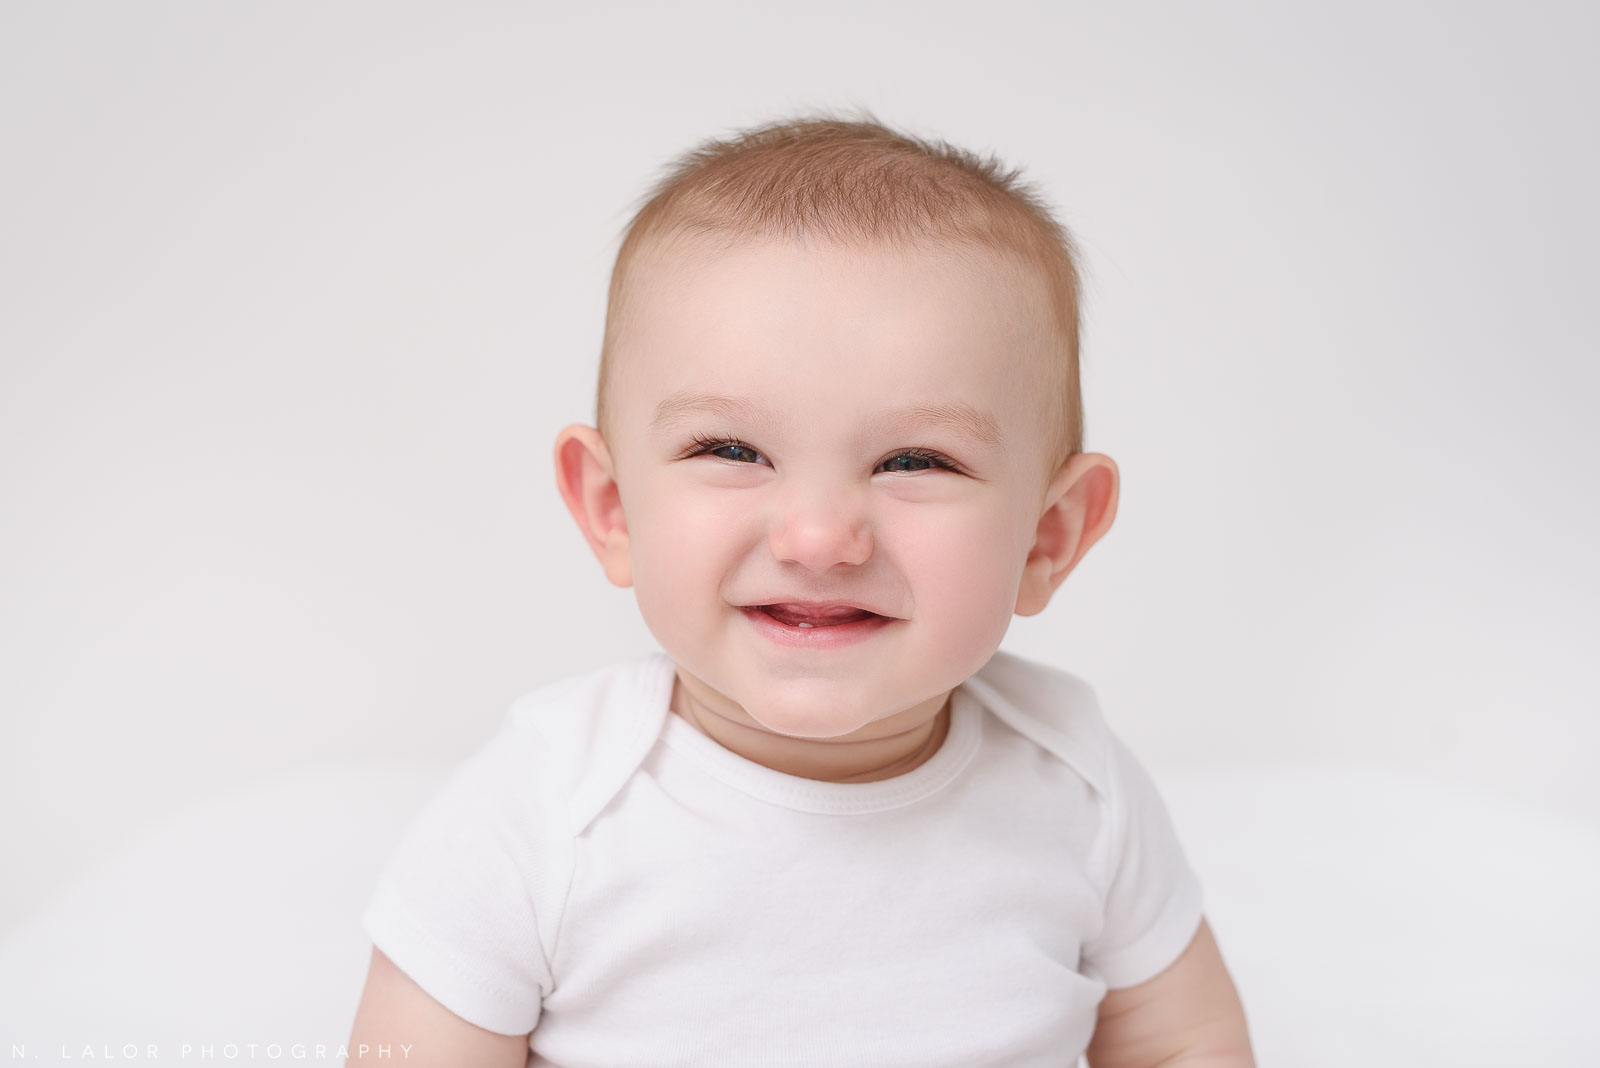 Happy baby smile. Portrait by N. Lalor Photography in Greenwich Connecticut.